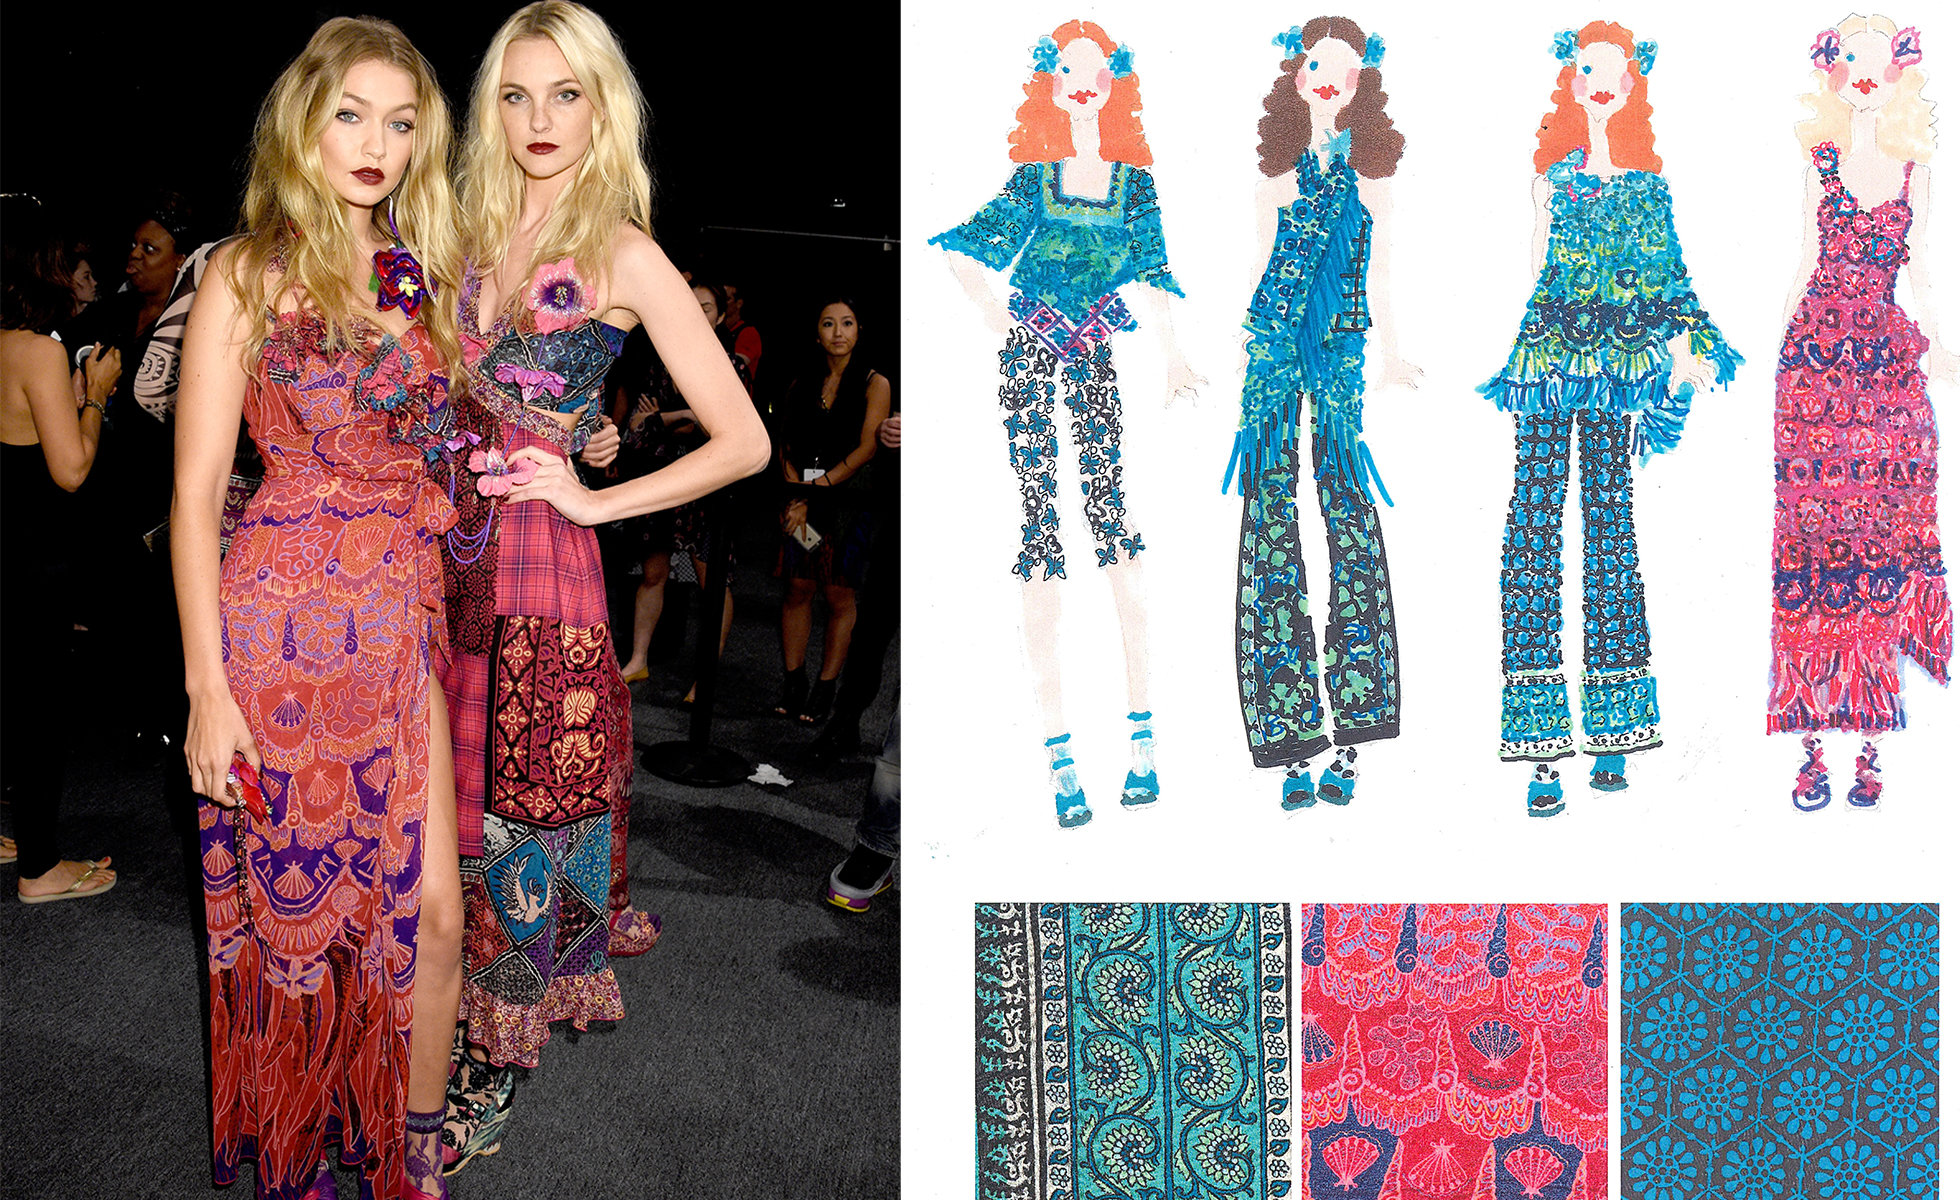 Left: Gigi Hadid and Caroline Trentini backstage in Spring 2016 Tahiti Collection. Photo: Jennifer Graylock; Right: Sketches from Anna Sui Spring 2016 Tahiti Collection | Image courtesy of Anna Sui